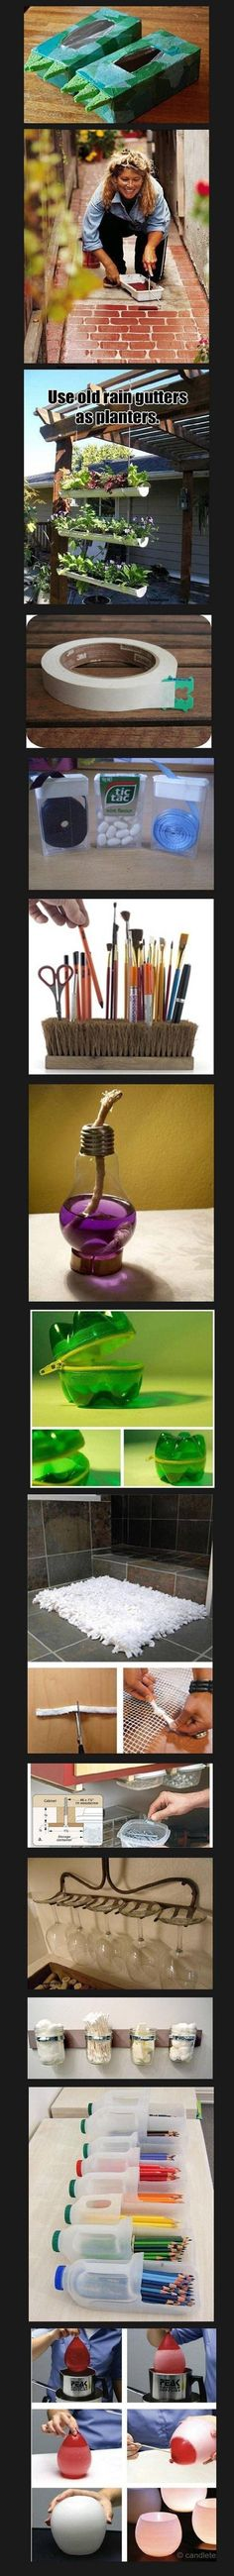 Cool things to do with stuff you find laying around the house